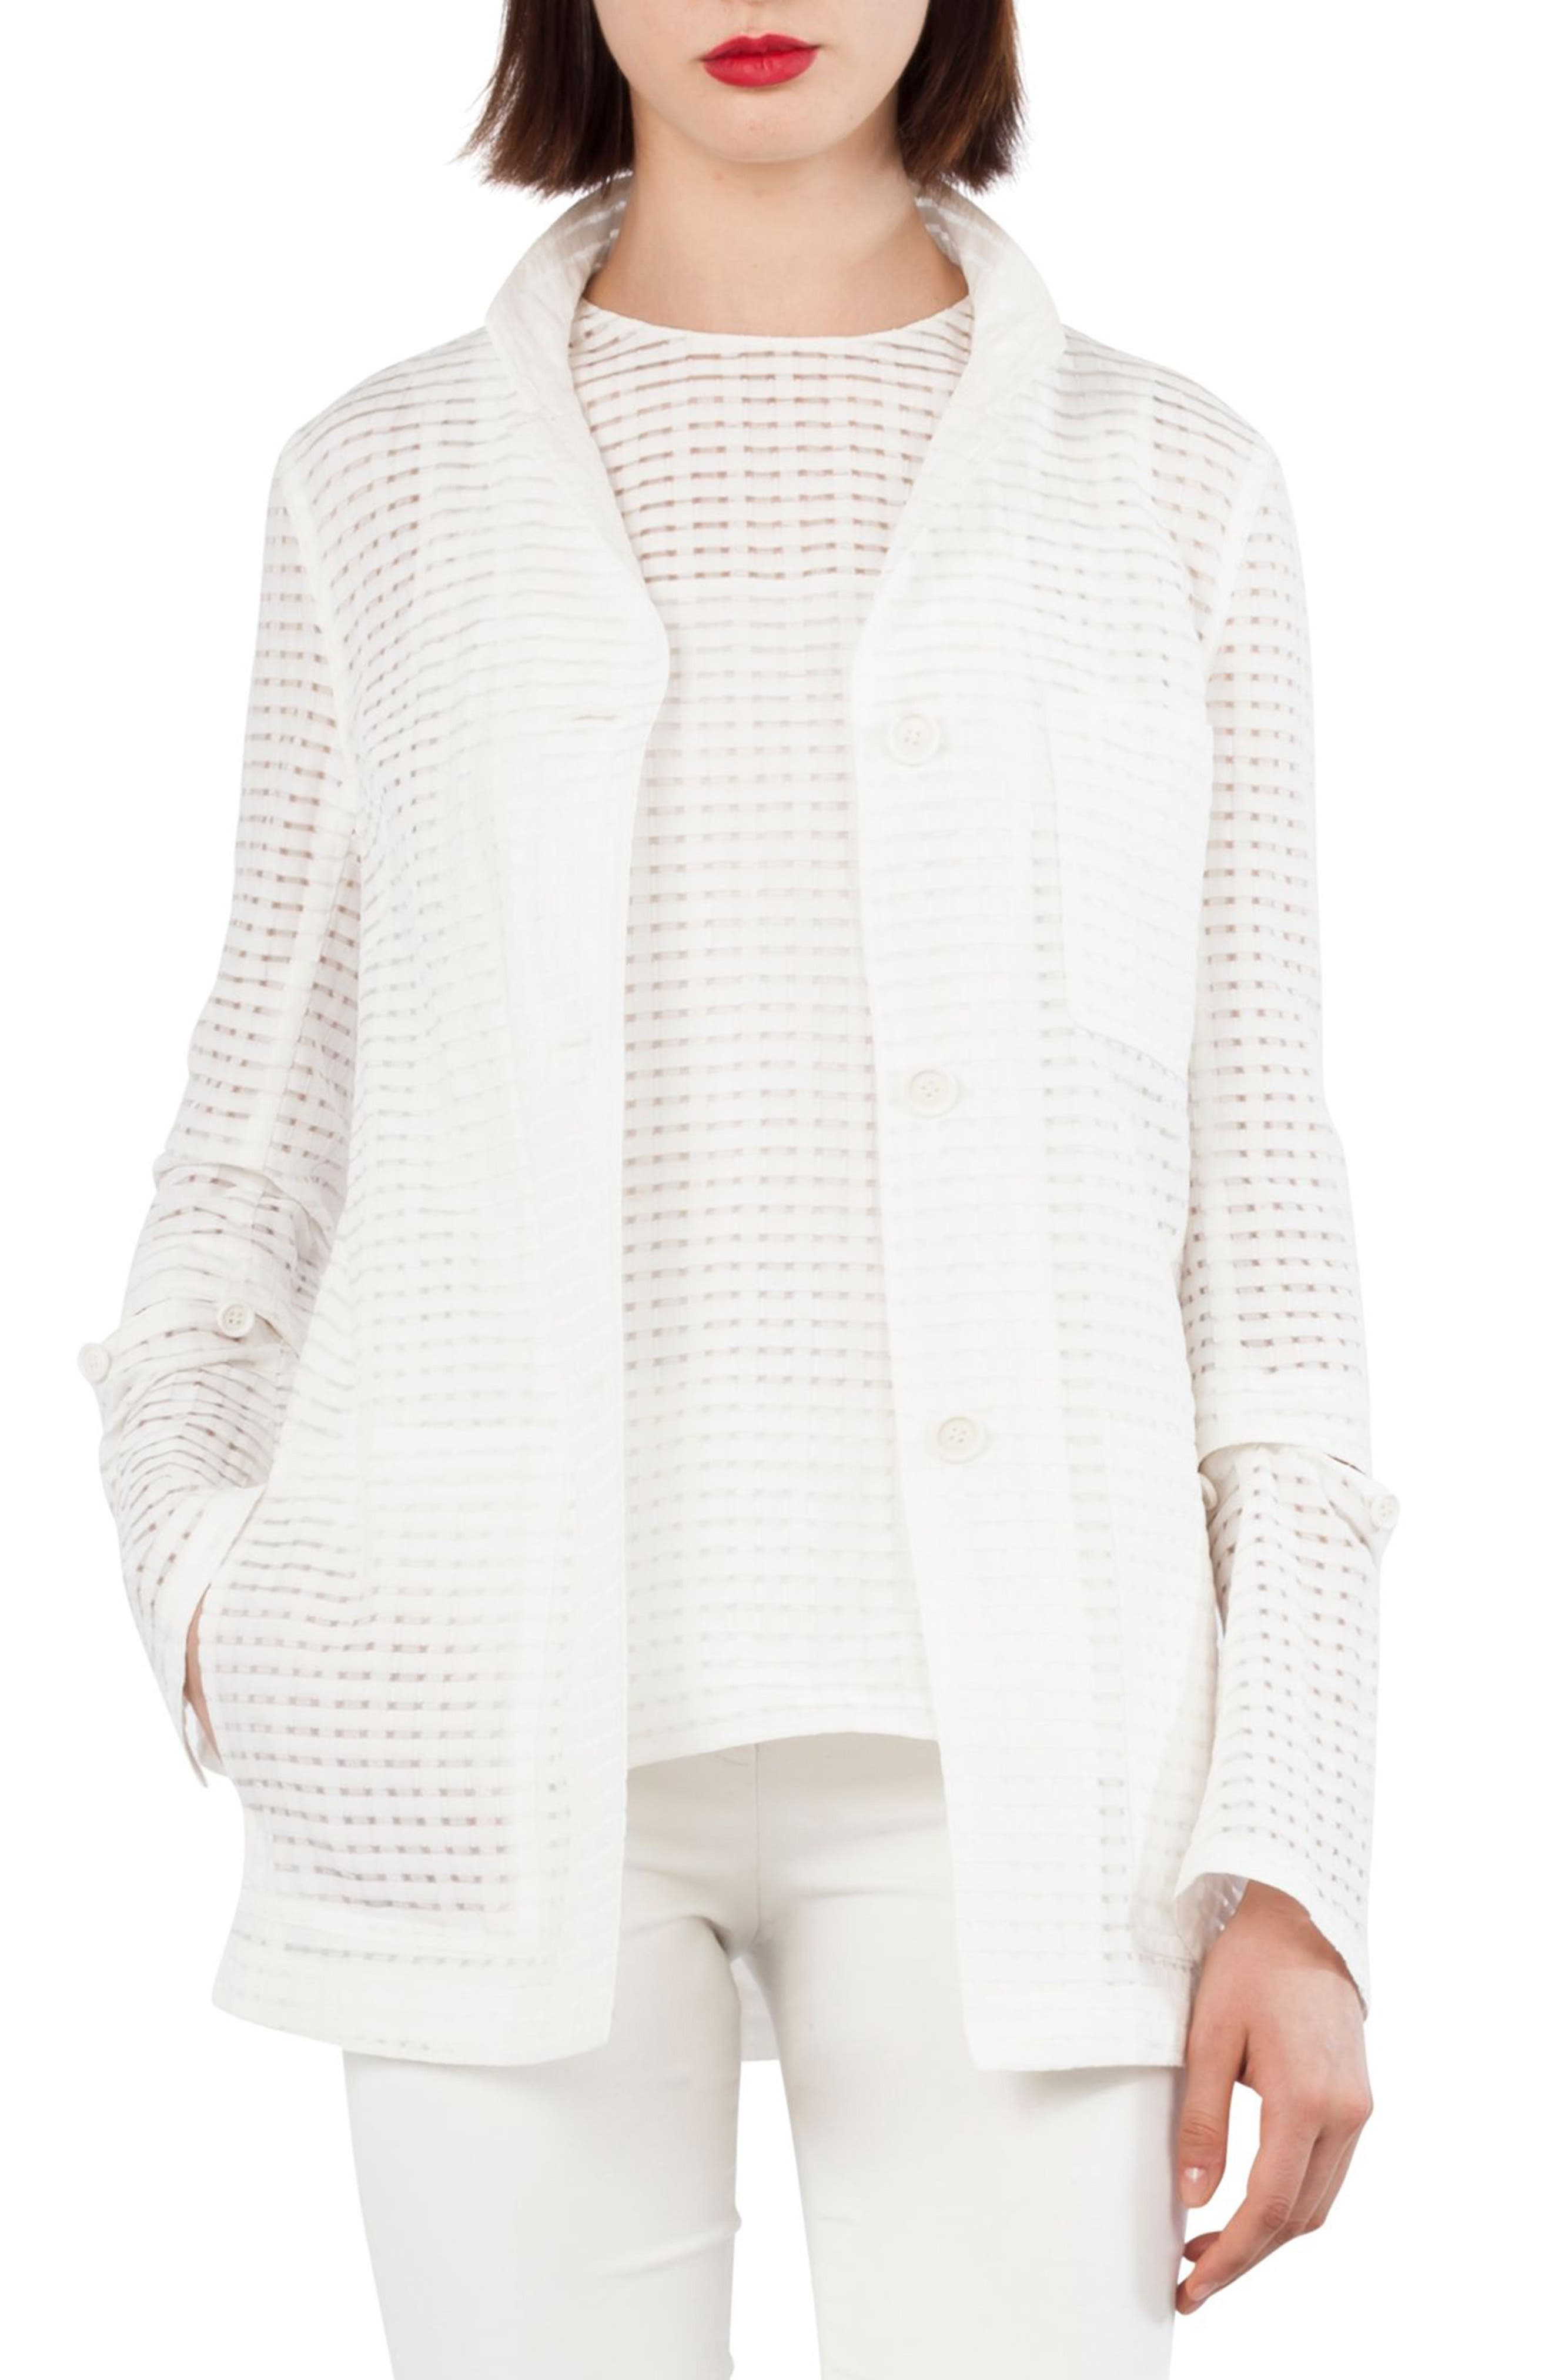 Openweave Silk & Cotton Blend Jacket with Detachable Cuffs,                             Main thumbnail 1, color,                             900